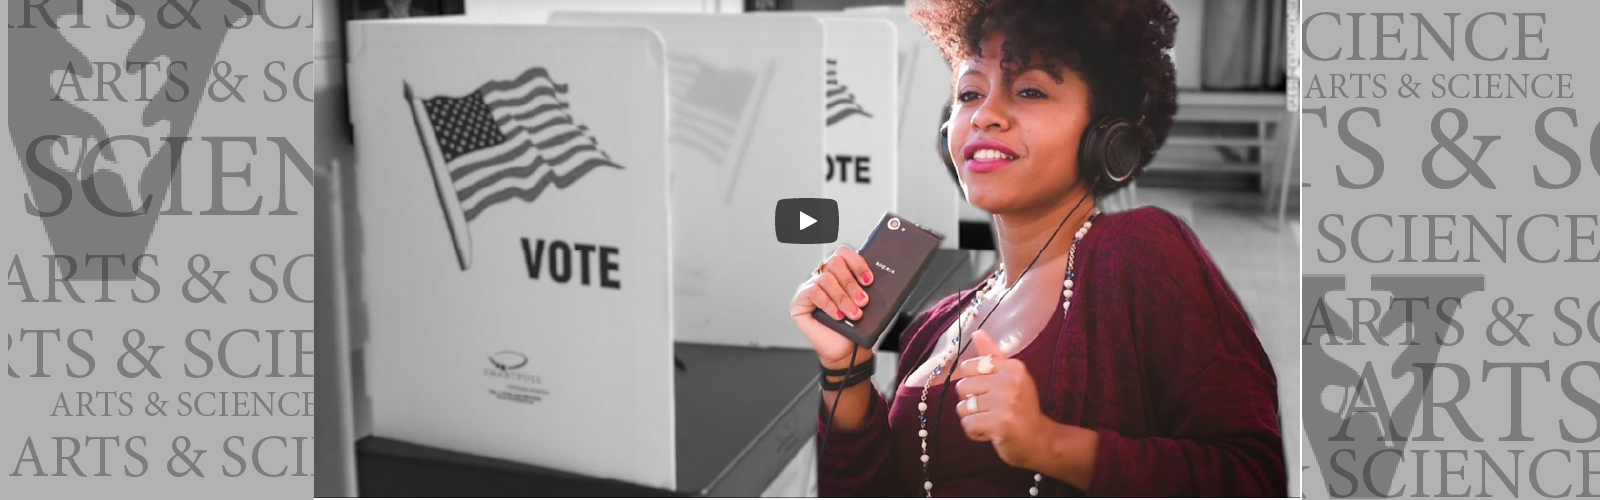 Playlist Politics: Students create ways to engage apathetic, angry voters